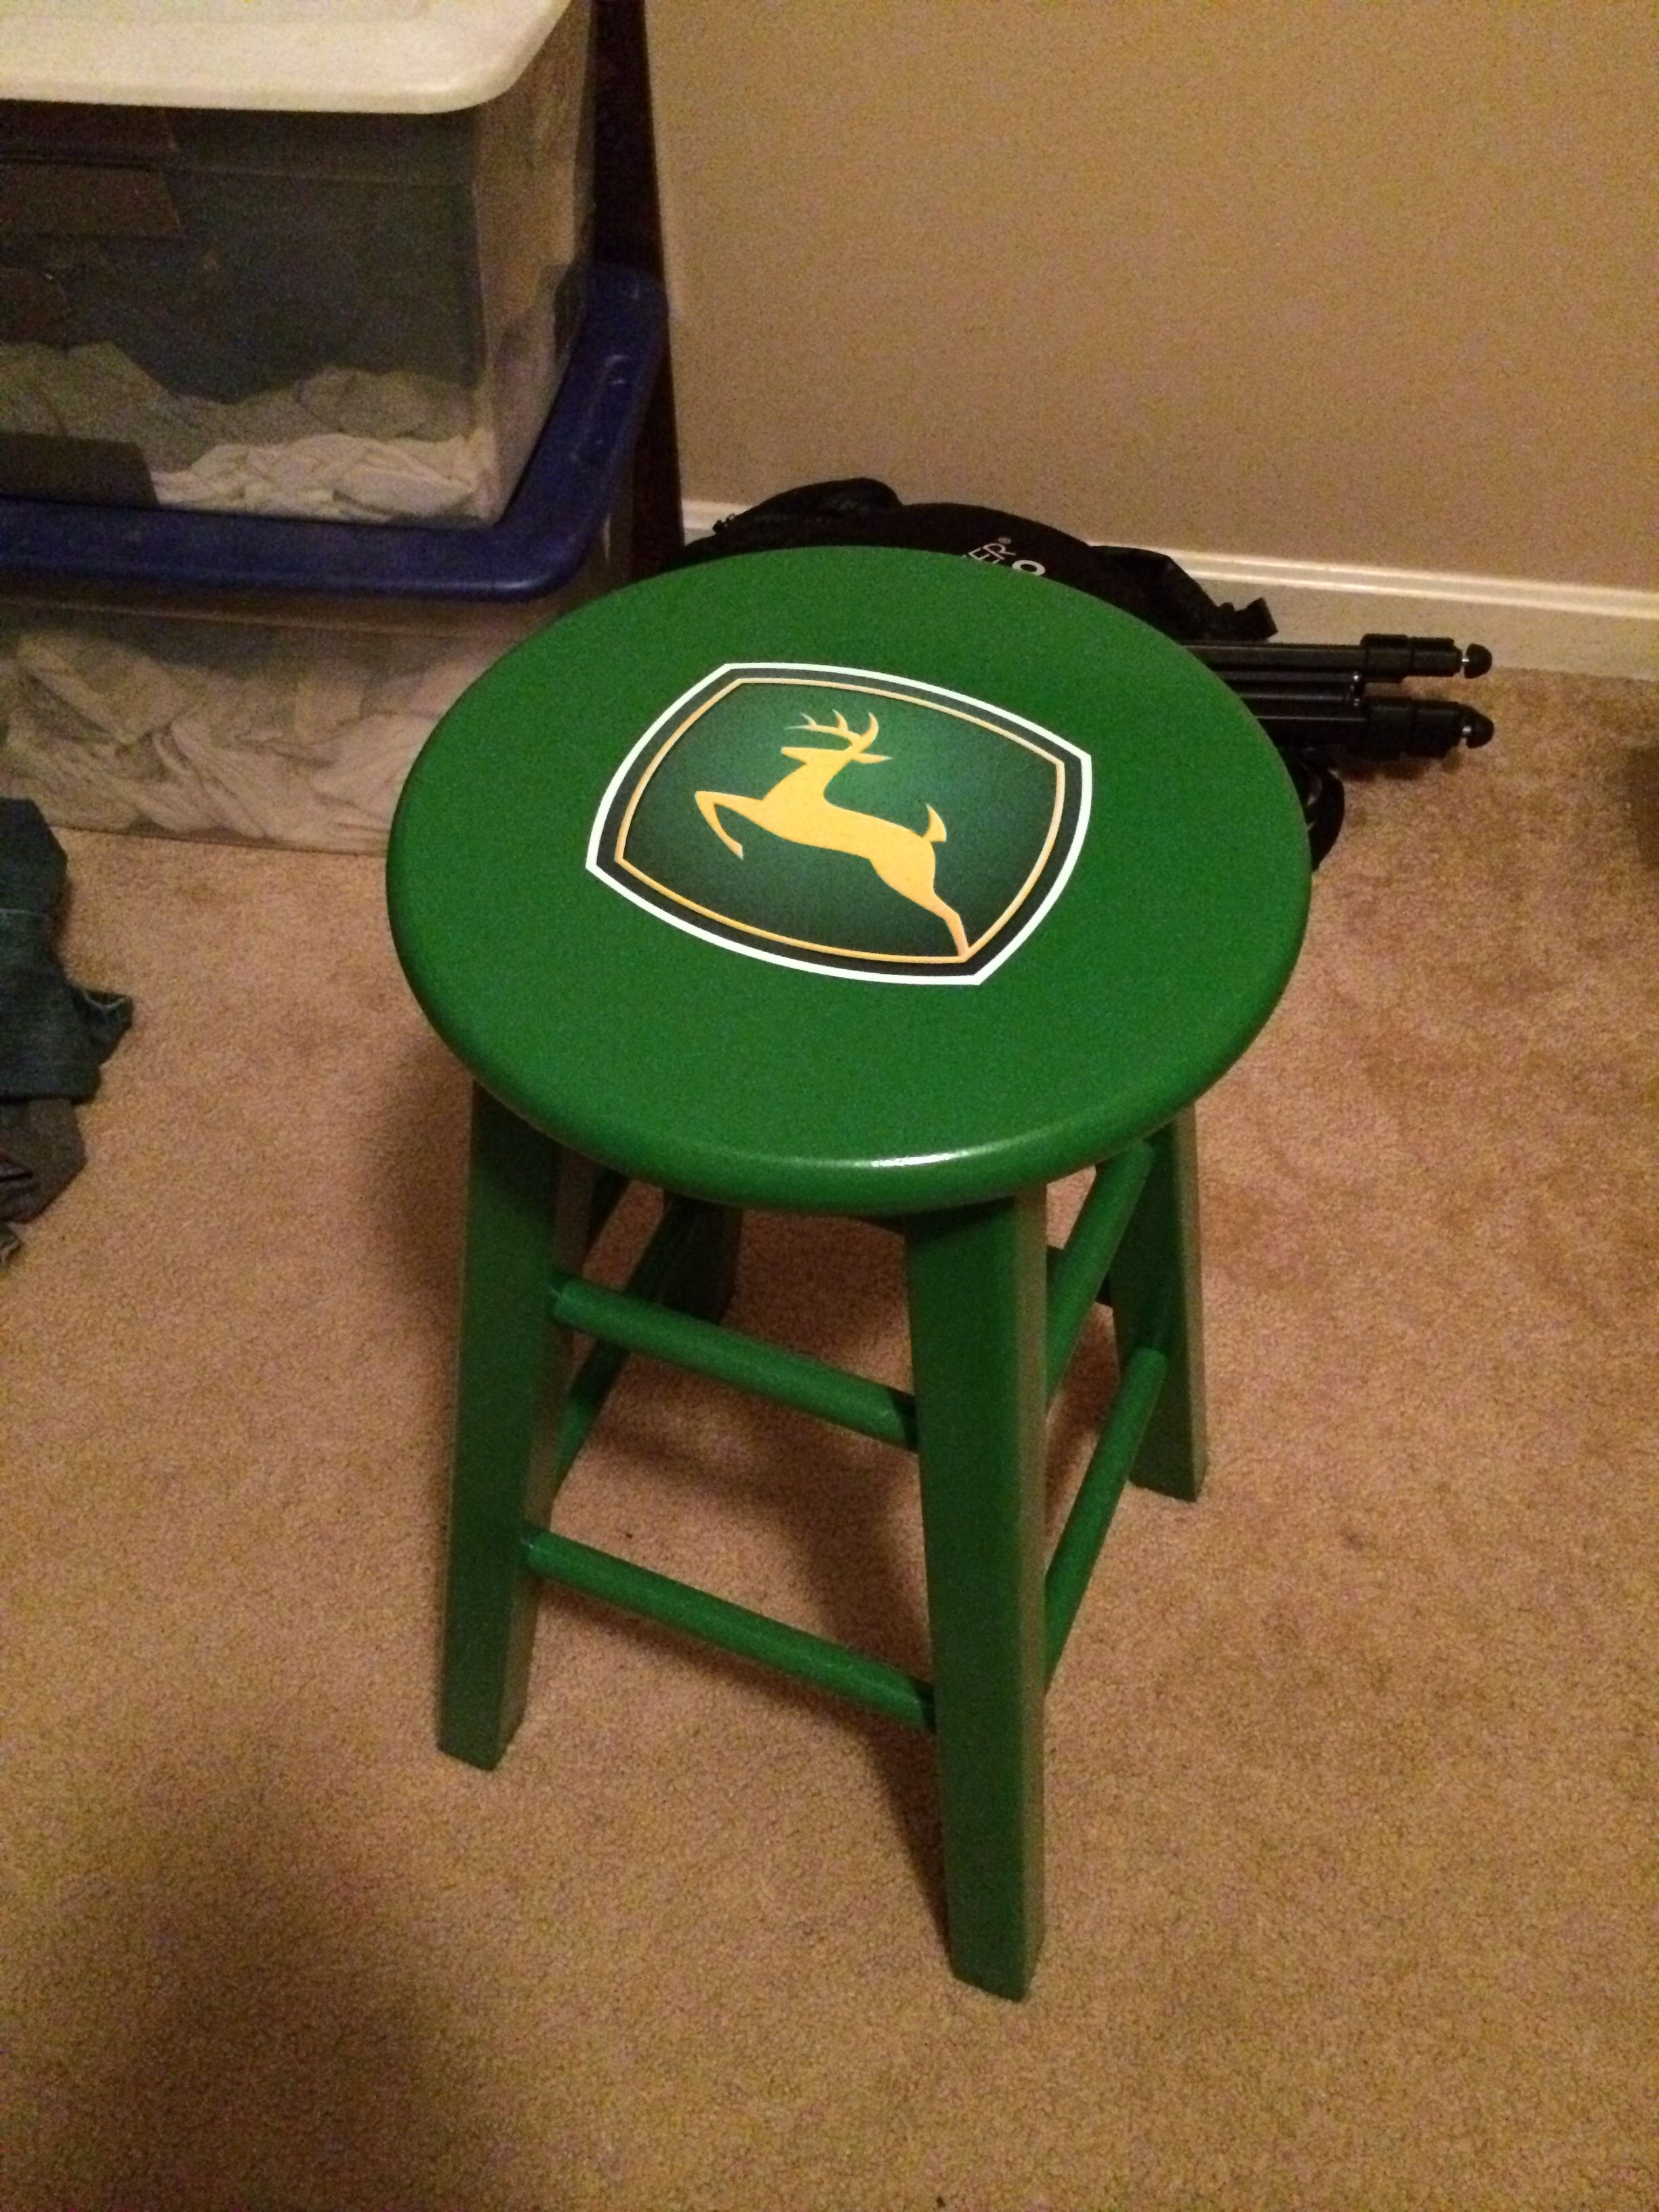 Homemade John Deere stool for garage workshop Got the green John